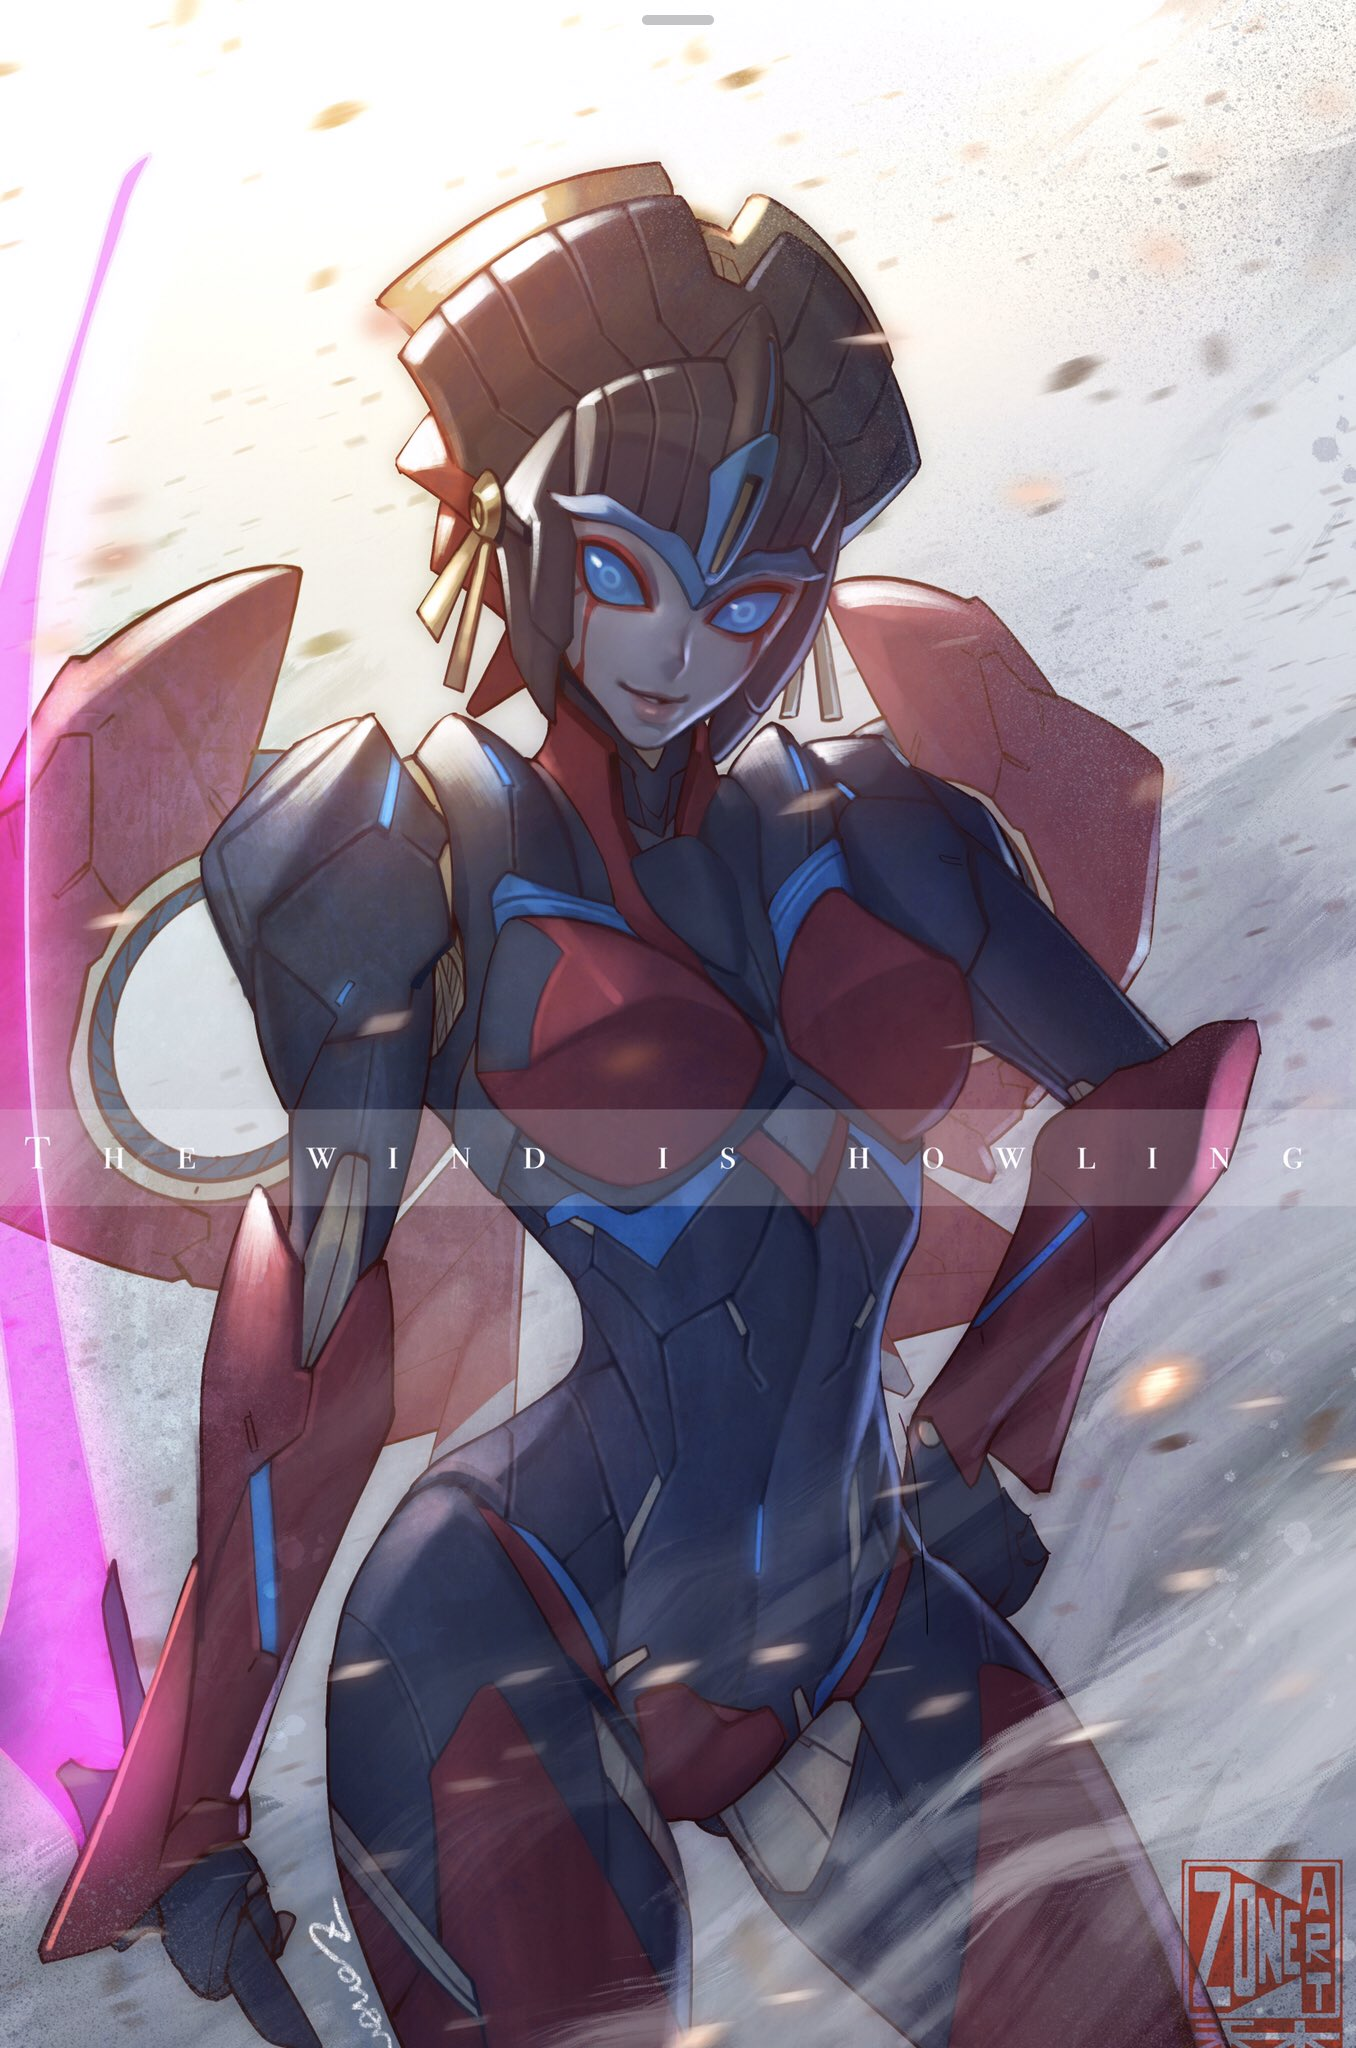 alien breasts energy_sword facial_mark geisha glowing glowing_eyes glowing_sword glowing_weapon highres lips no_humans robot science_fiction sword transformers weapon windblade zoner